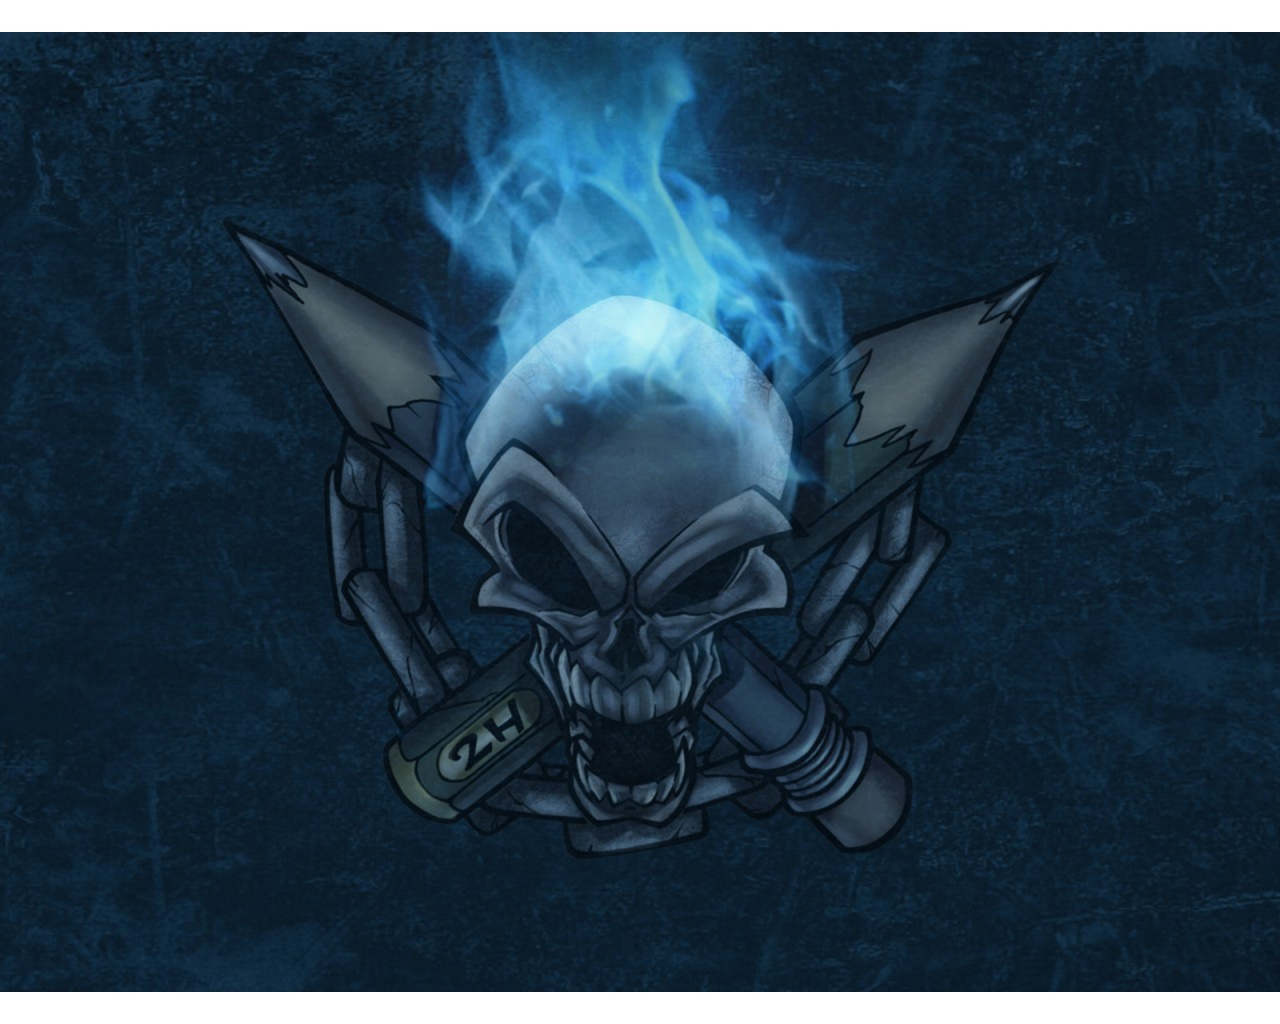 Blue Flame Skull Wallpapers 1280x1024 257413